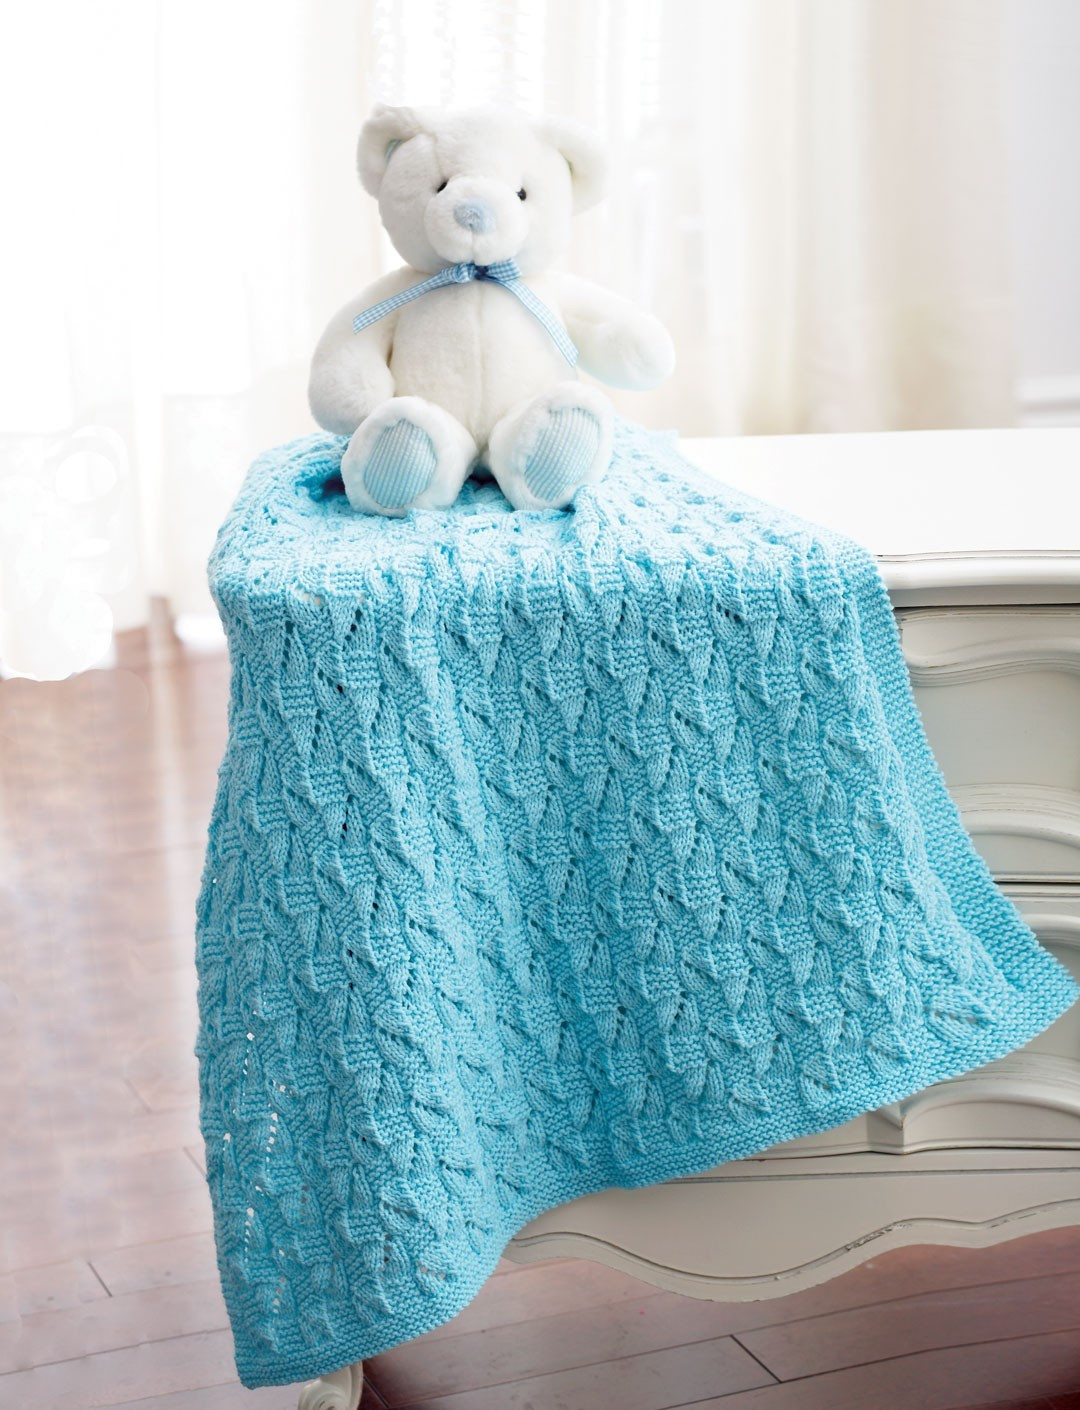 Lovely Staggered Squares Blanket In Bernat Baby Sport Bernat Baby Blanket Knitting Patterns Of Charming 43 Models Bernat Baby Blanket Knitting Patterns